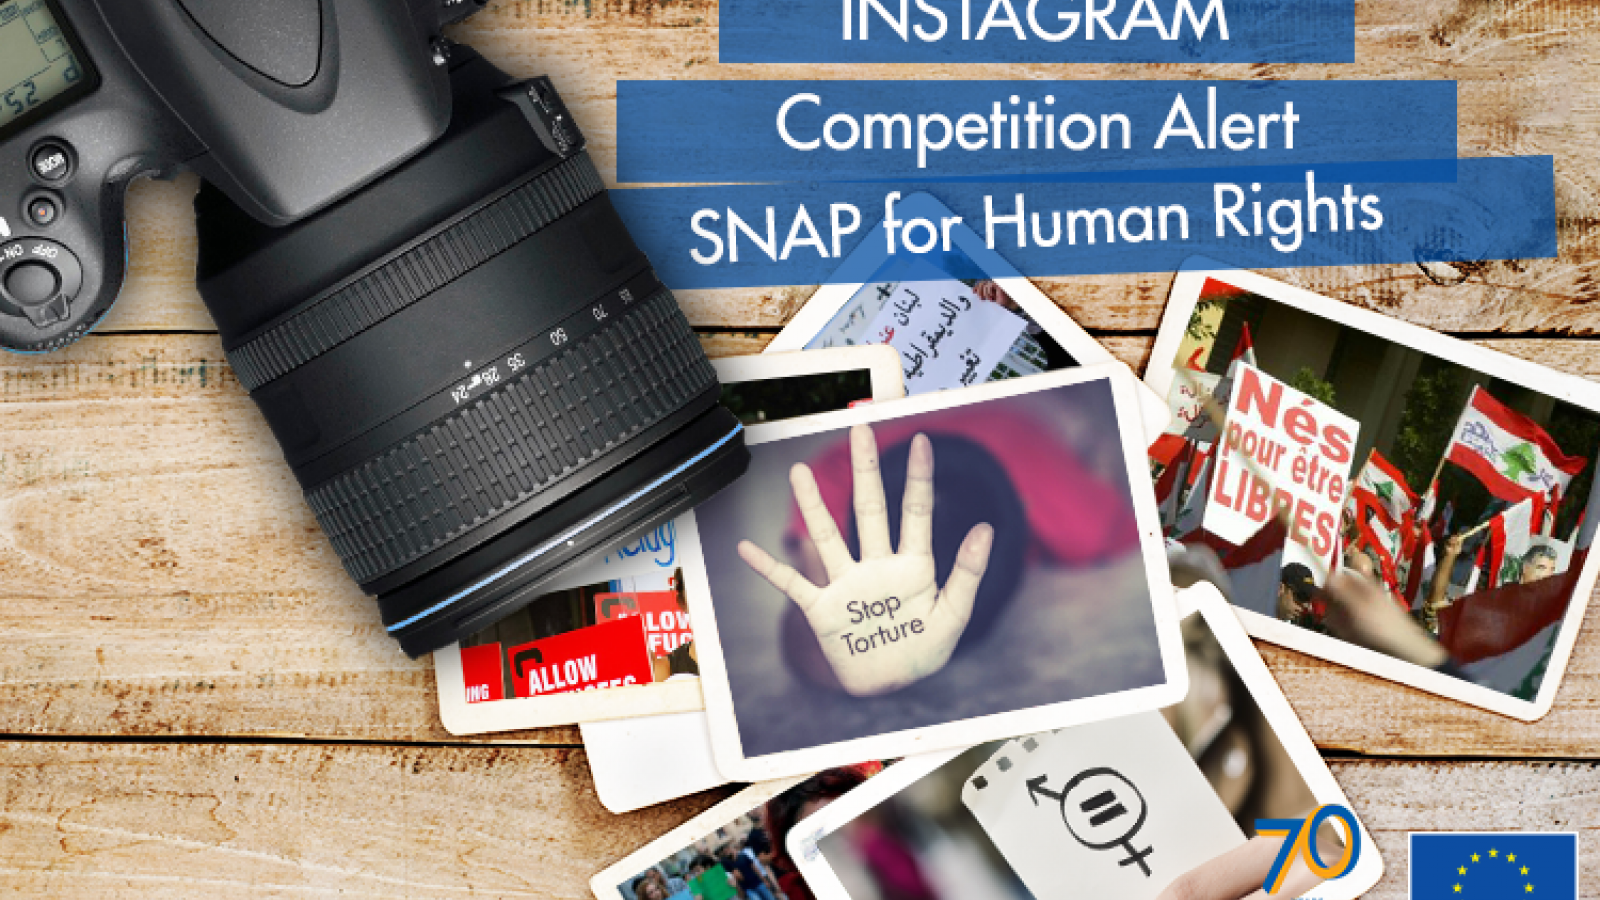 Snap for human rights